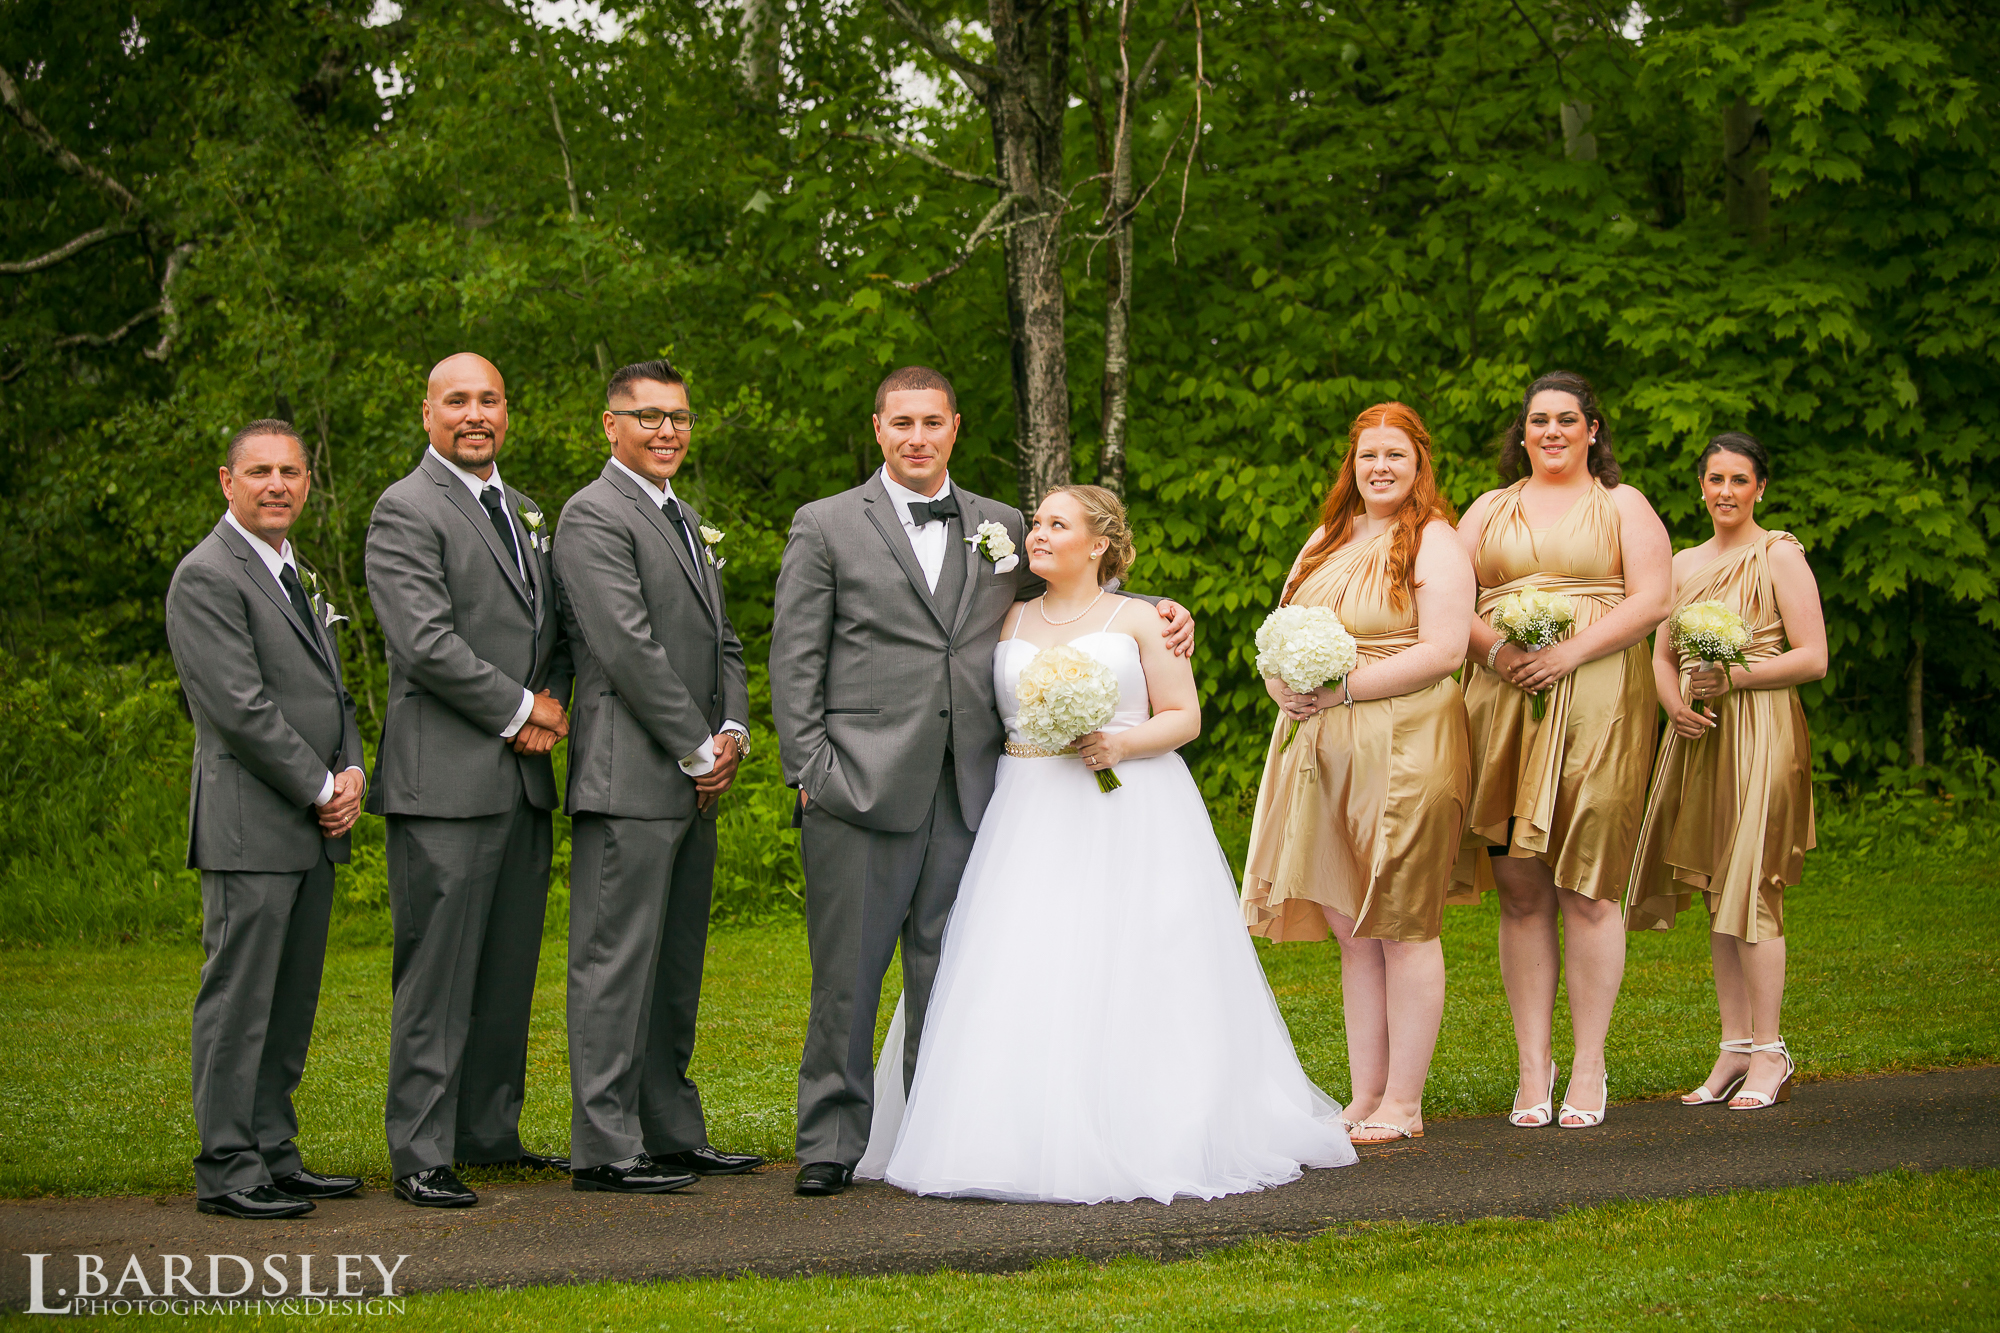 Natasha & Coty's Wedding